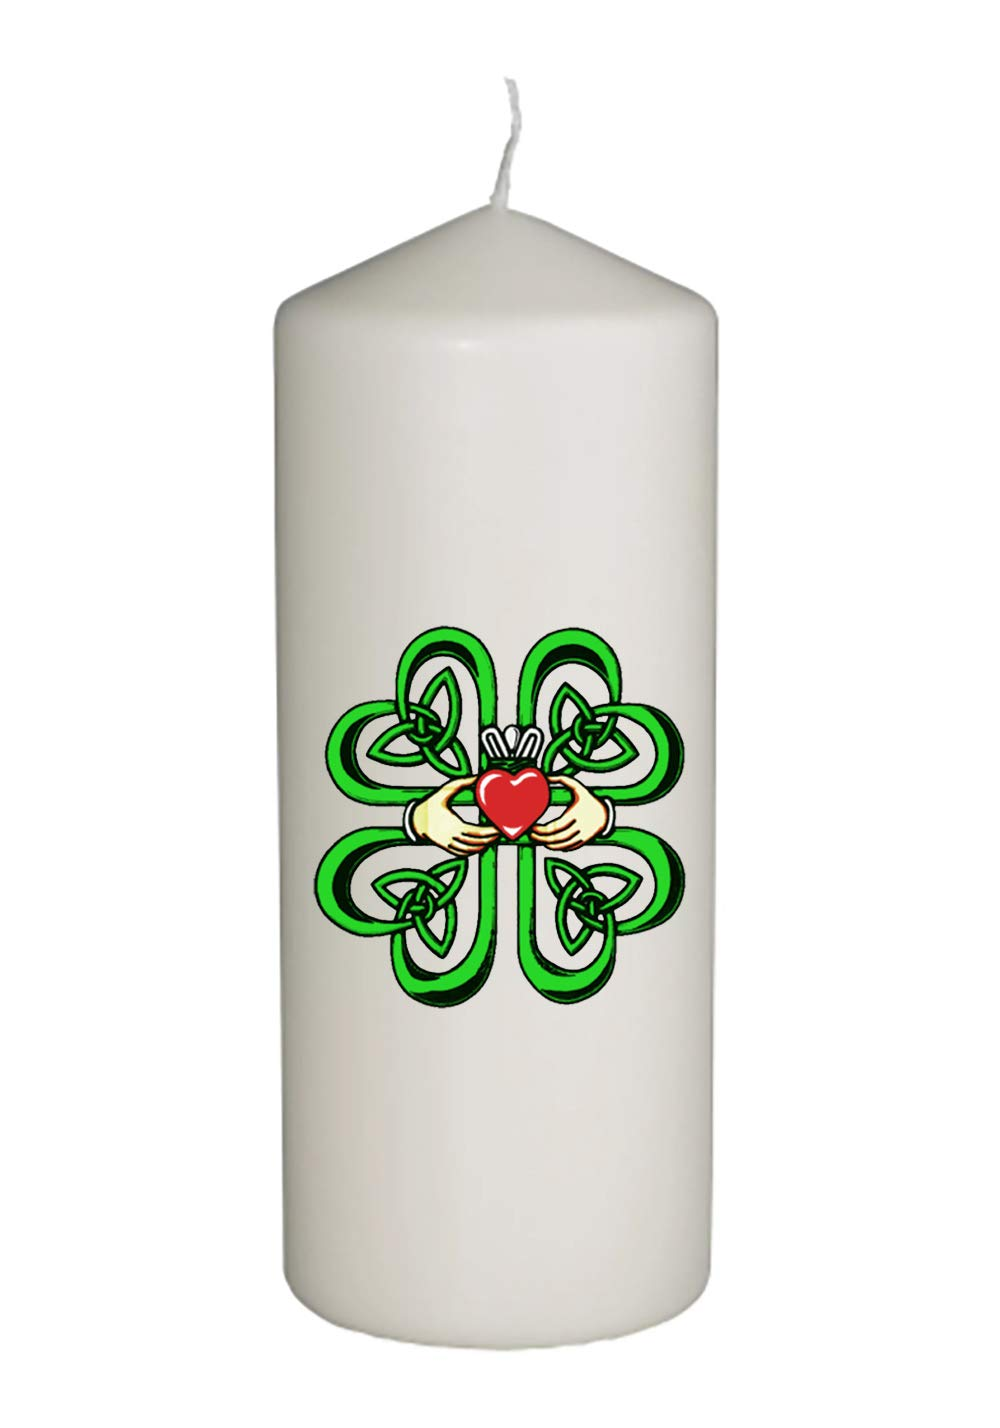 Hat Shark Irish Claddagh Ring w/Celtic Weave & Lucky Four Leaf Clover Thick White in Full Color Unity Candle - Wedding, Baptism, Funeral, Special Event Decoration (6 inches Tall)